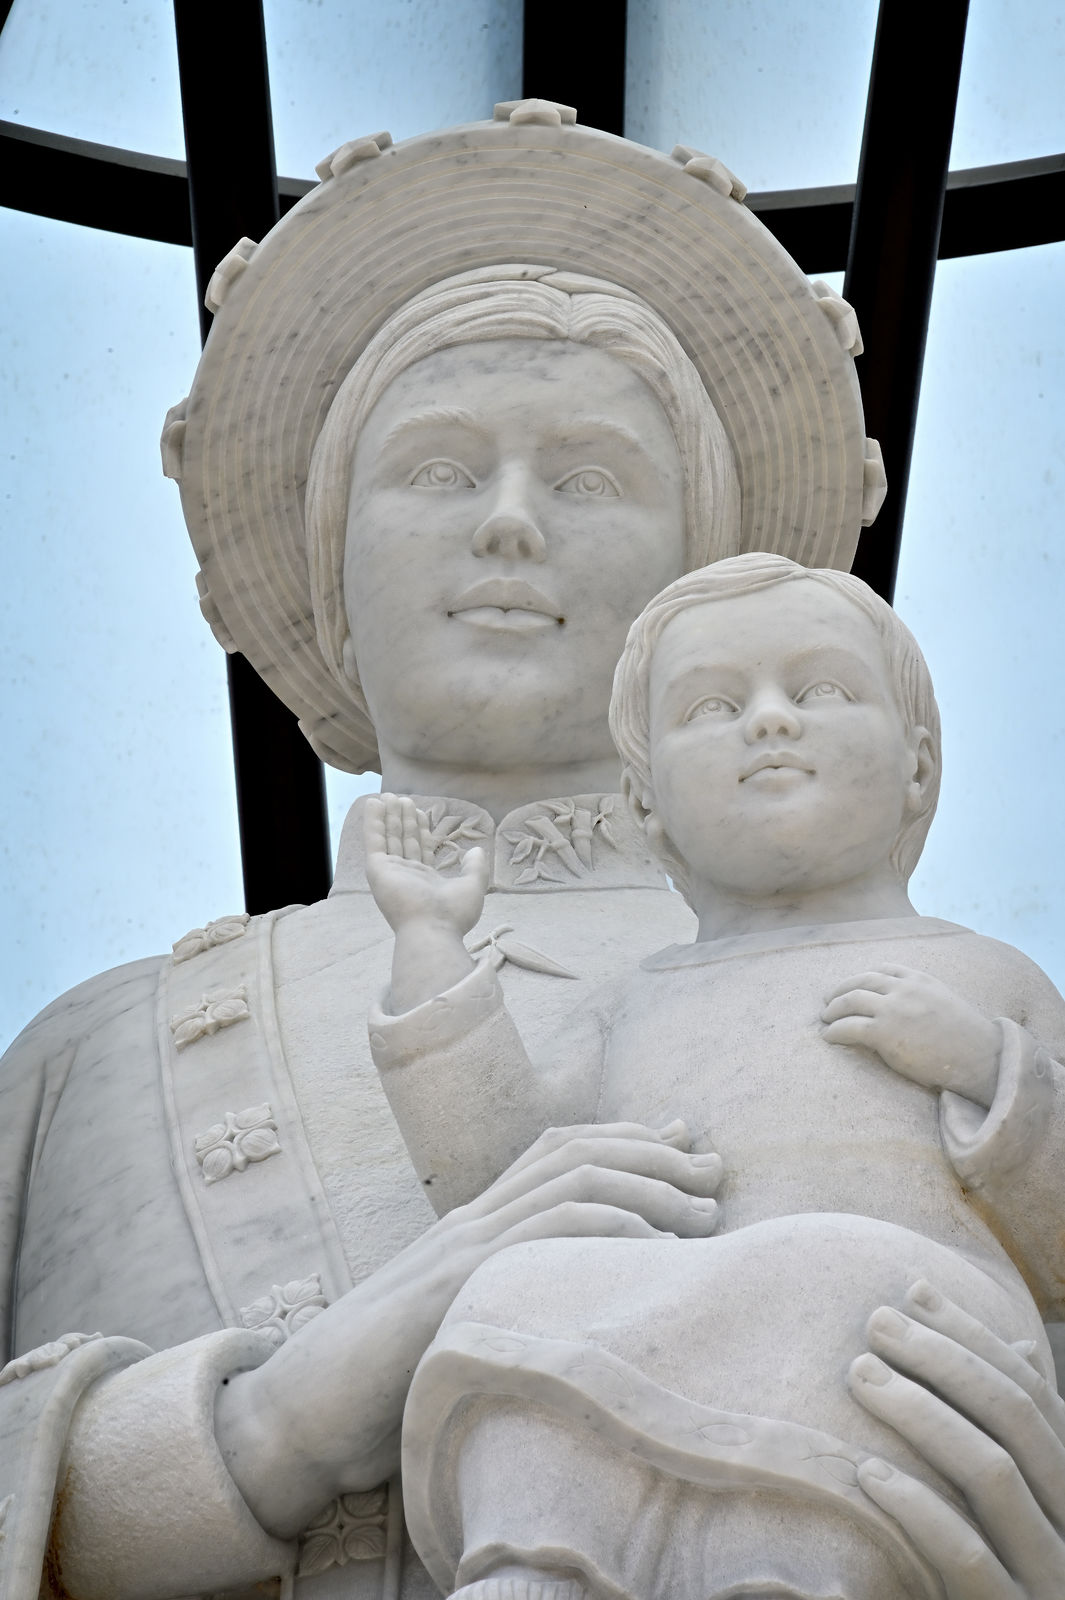 The Our Lady of La Vang statue at the Christ Cathedral campus depicts the Virgin Mary with a Eurasian face, holding the Baby Jesus and wearing a traditional Vietnamese áo dài dress and khăn đống hat. Photo courtesy Diocese of Orange.